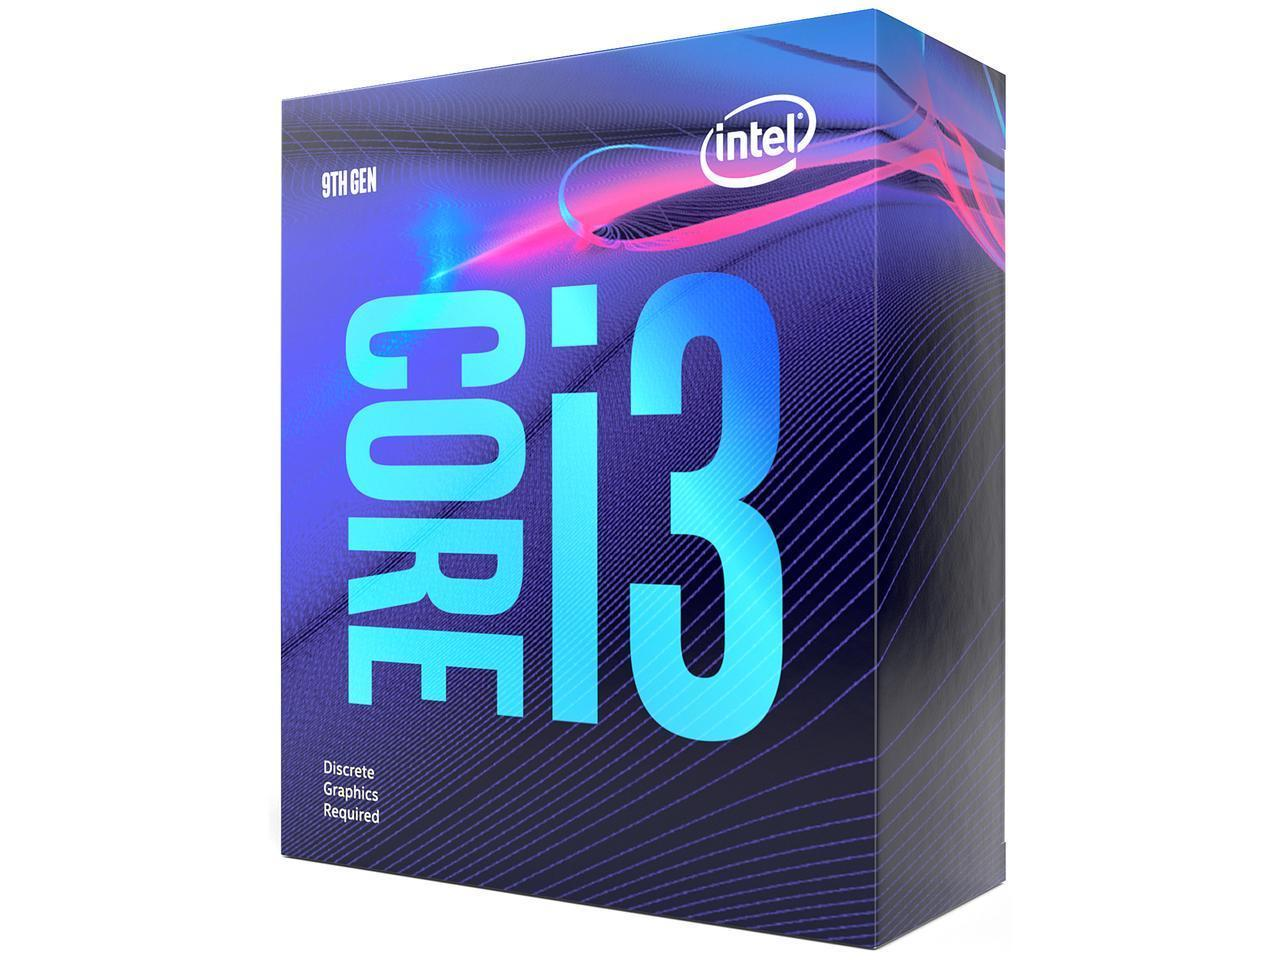 Процесор Intel Coffee Lake Core i3-9100F 3.60GHz (up to 4.20GHz ), 6MB, 65W LGA1151 (300 Series)-3